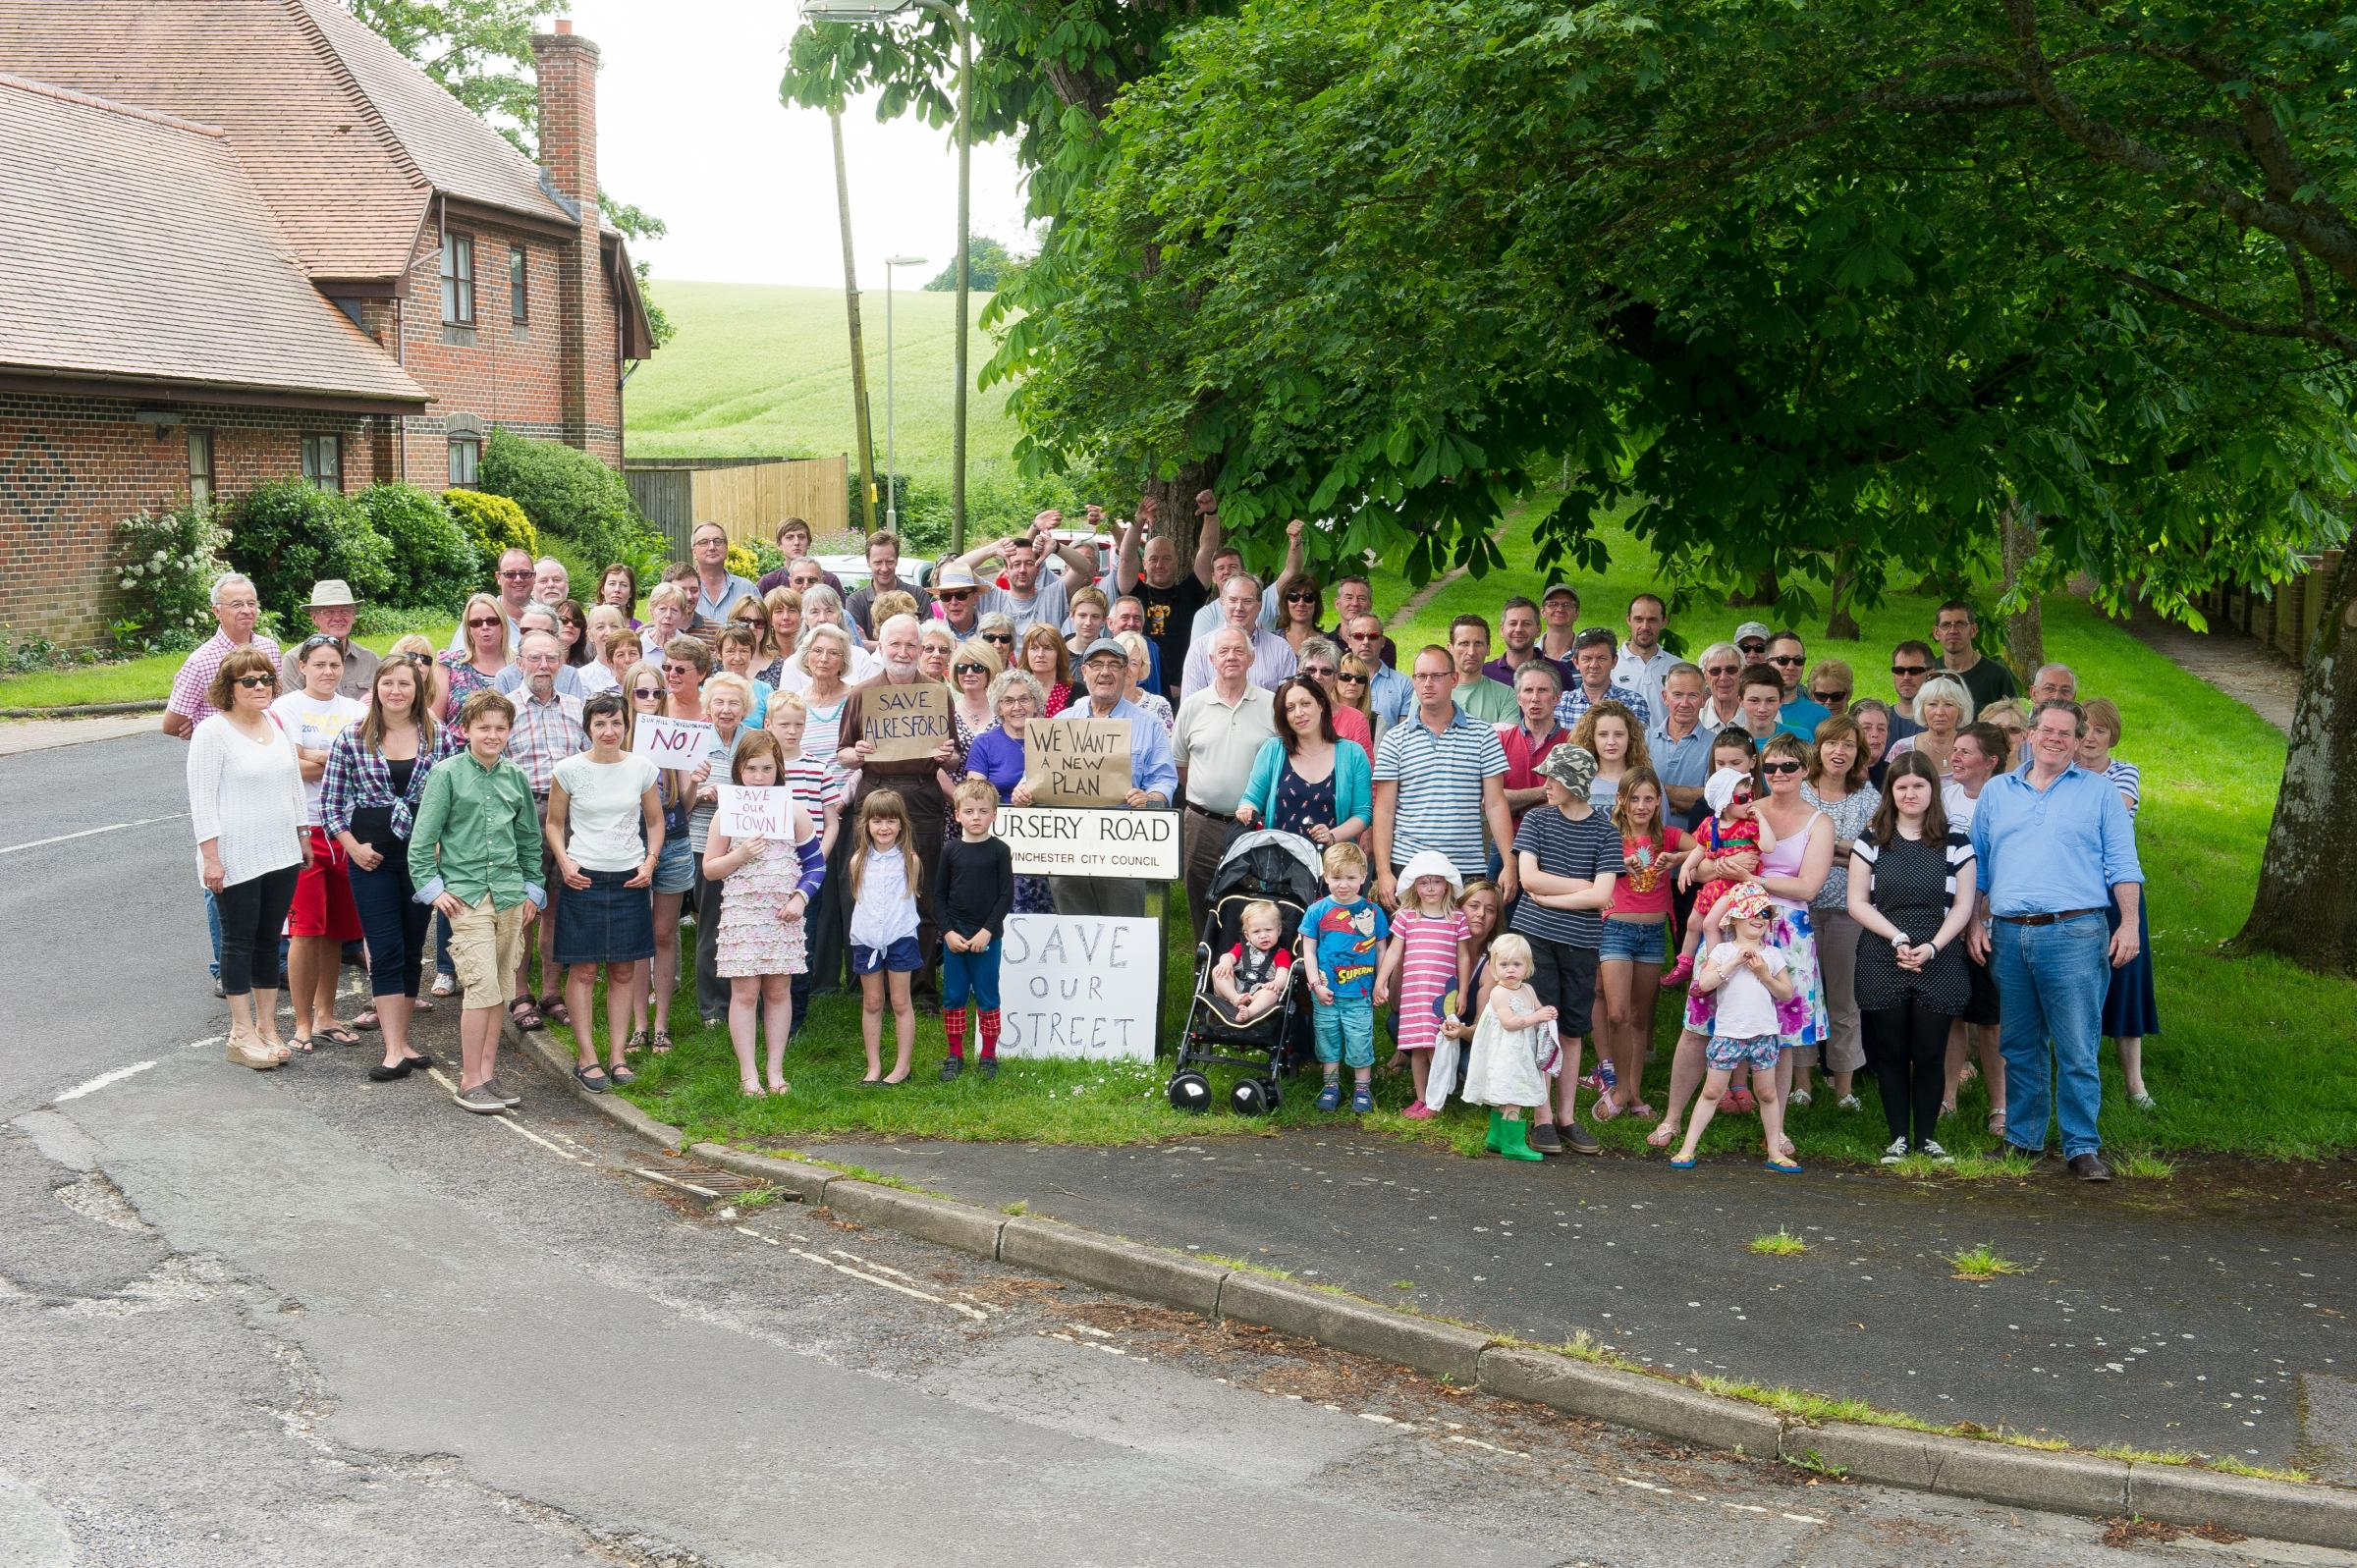 Angry residents stage protest over plans for hundreds of new homes